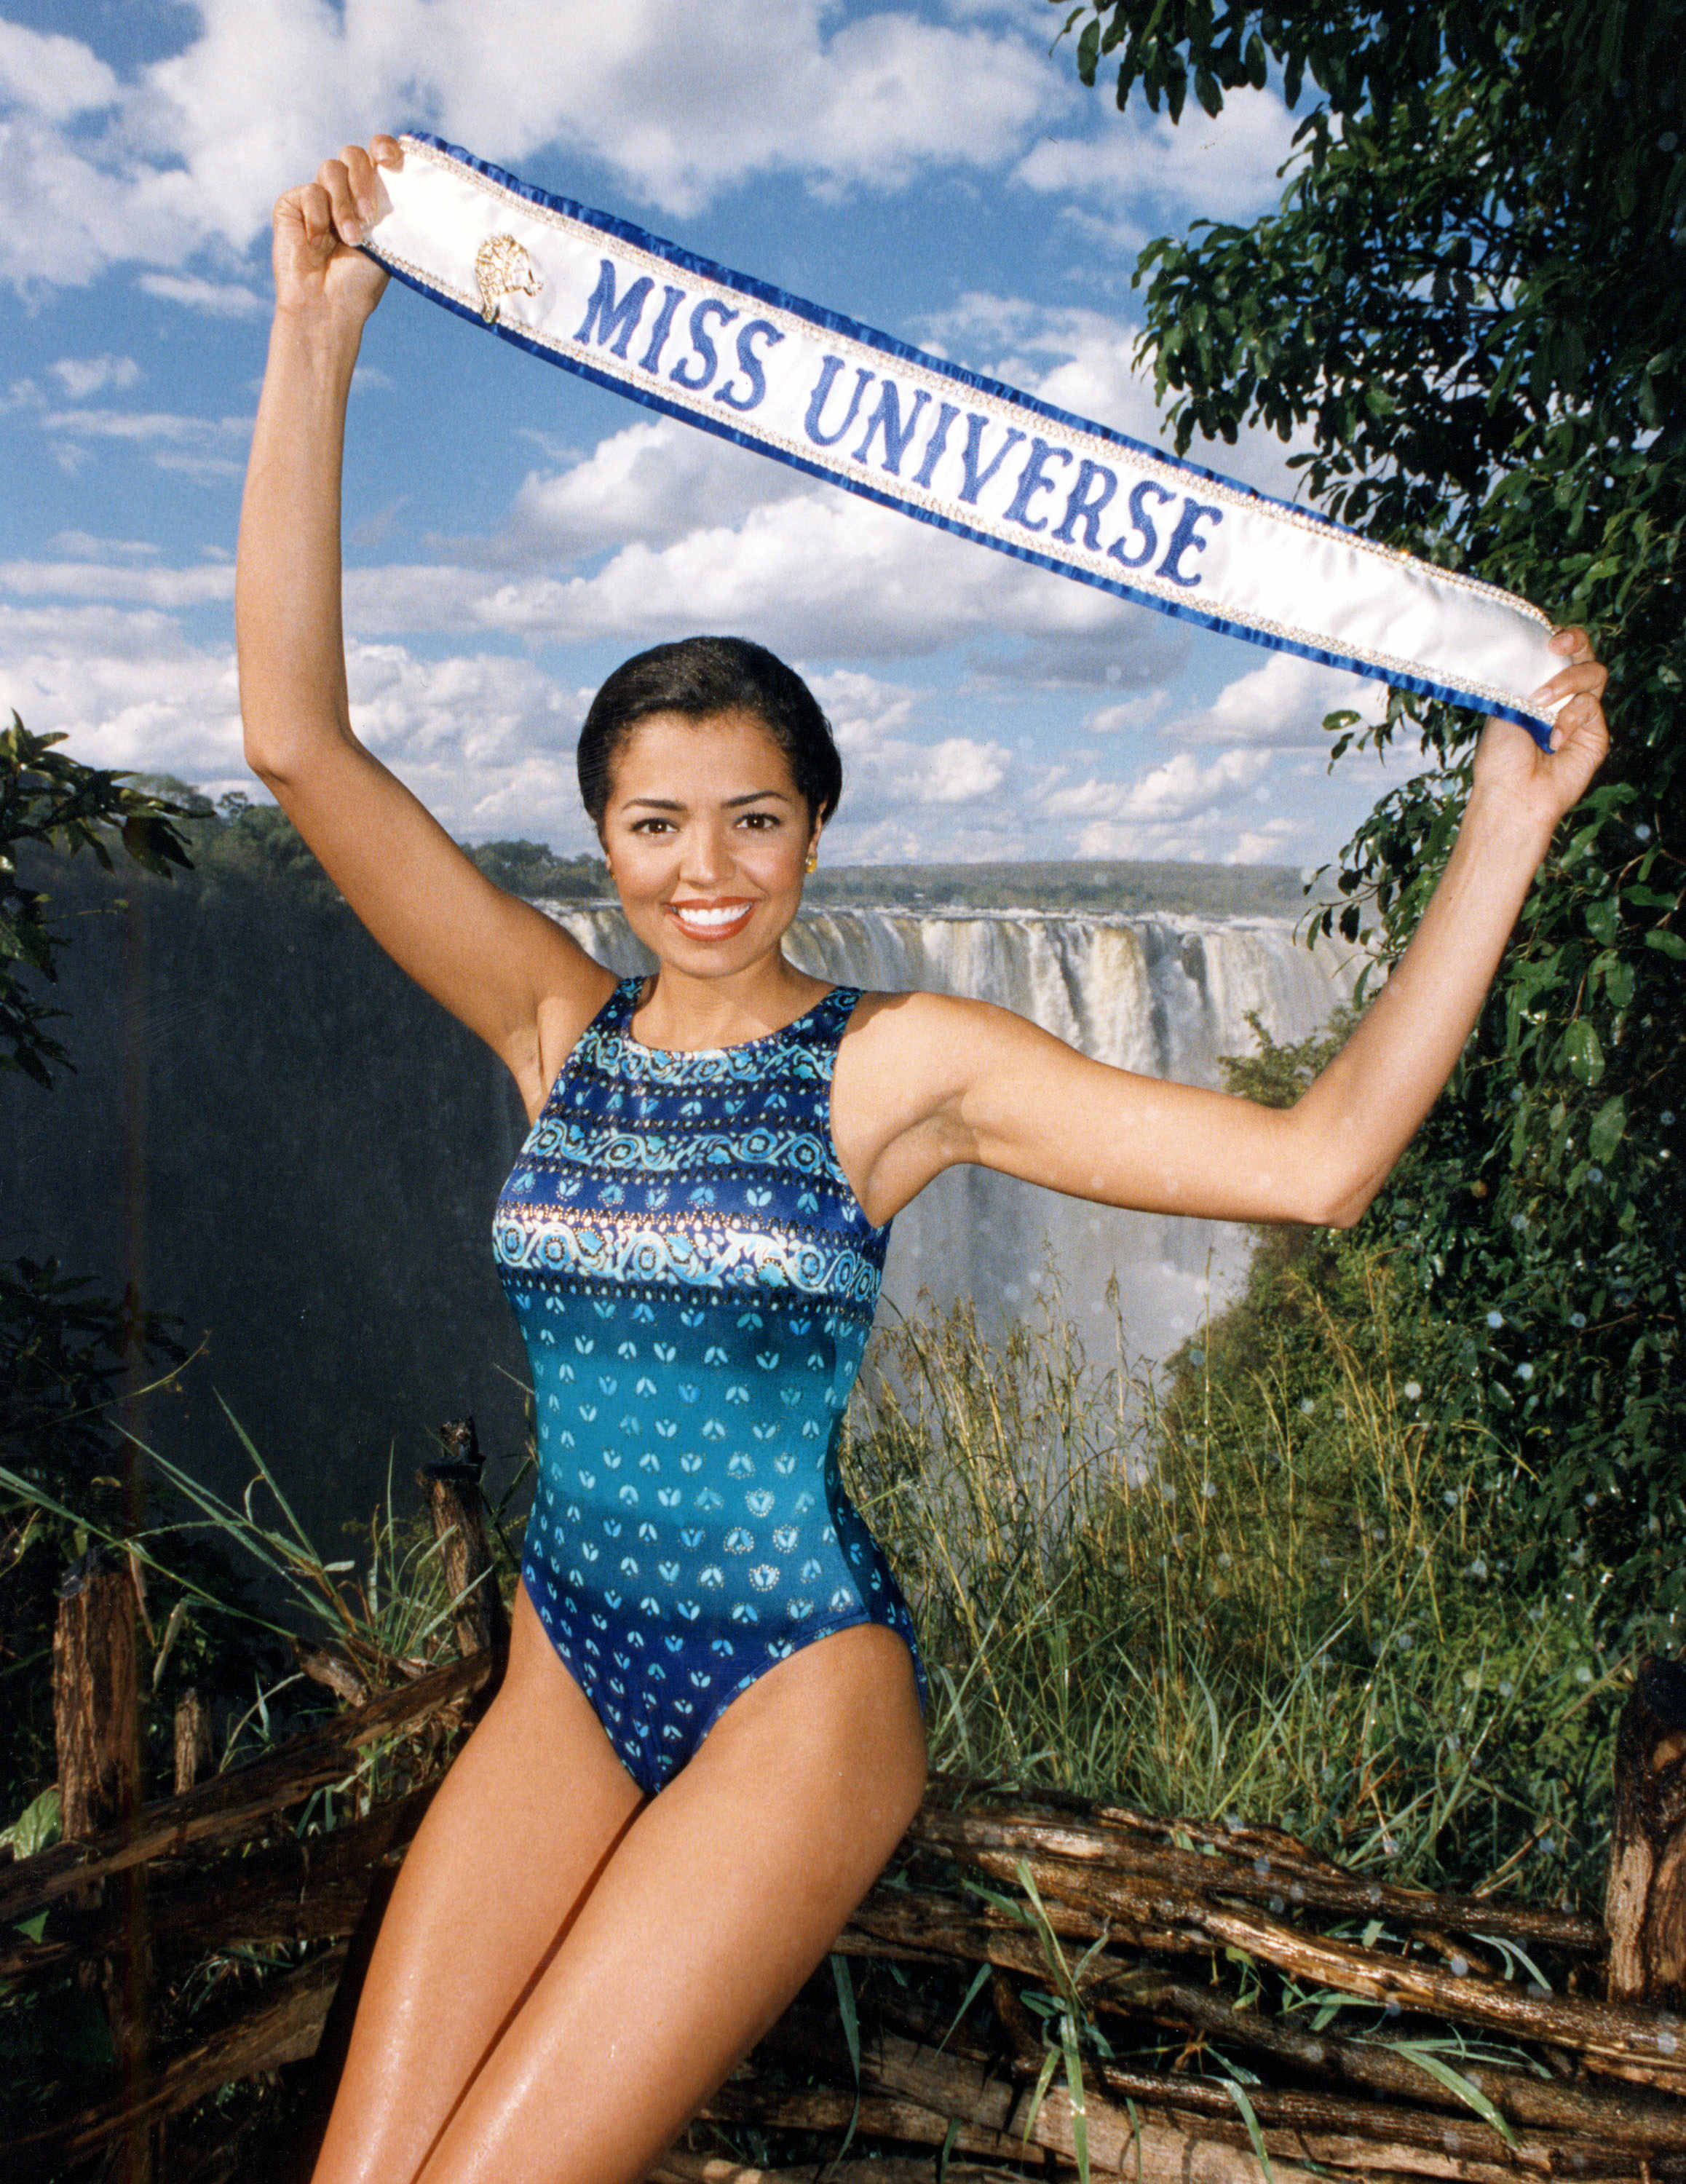 chelsi smith, miss universe 1995. † - Página 2 Image112